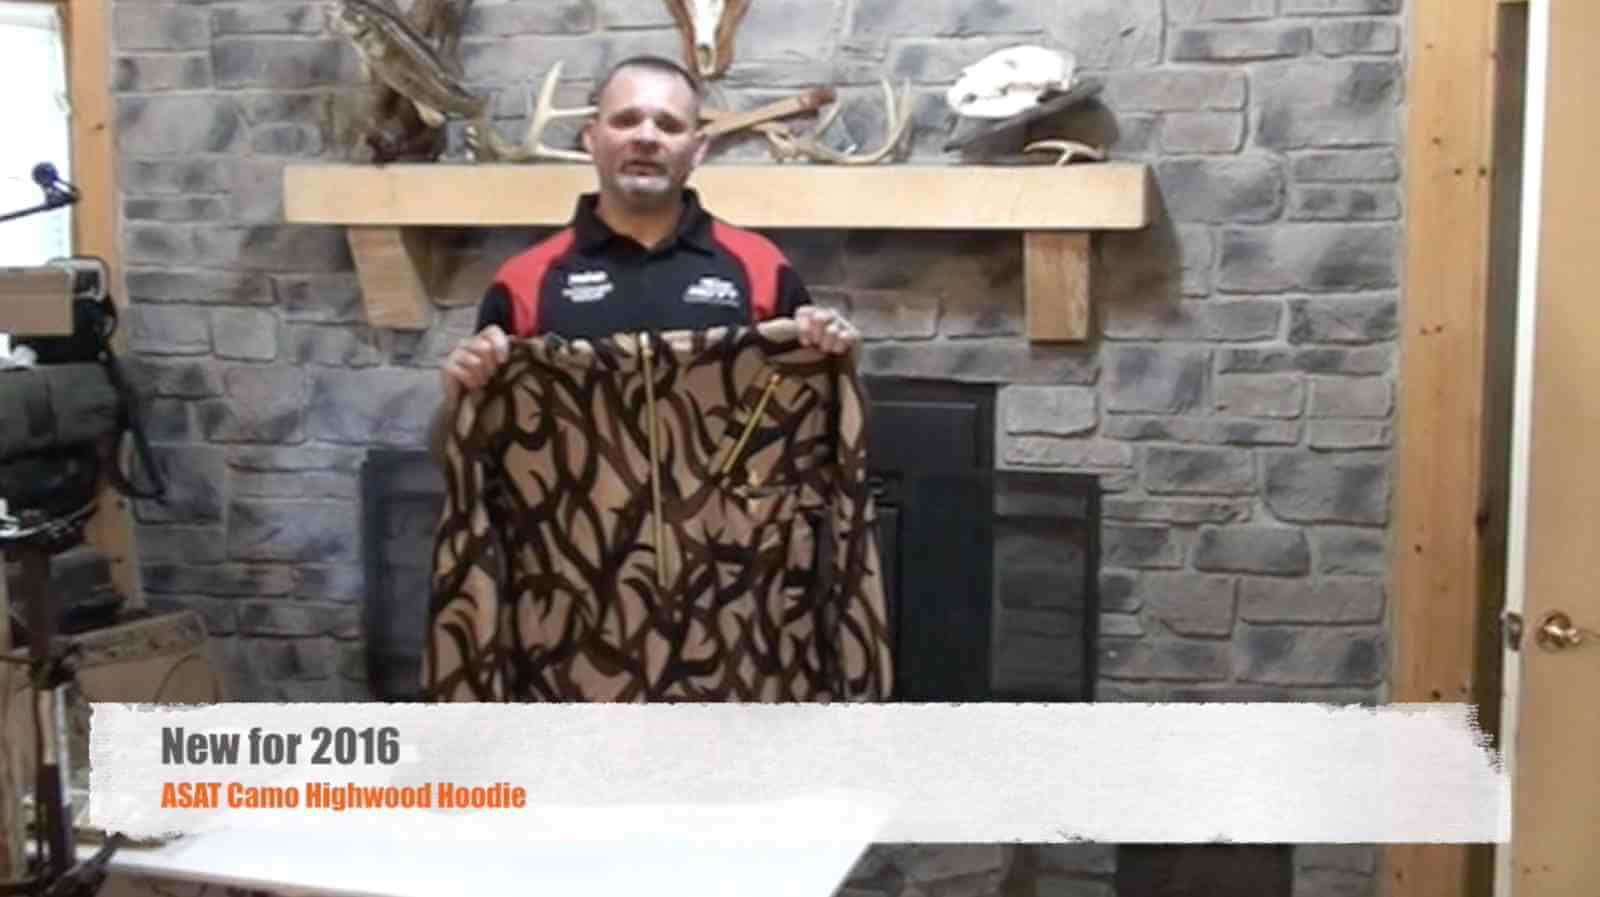 ASAT Camo Highwood Hoody Introduction